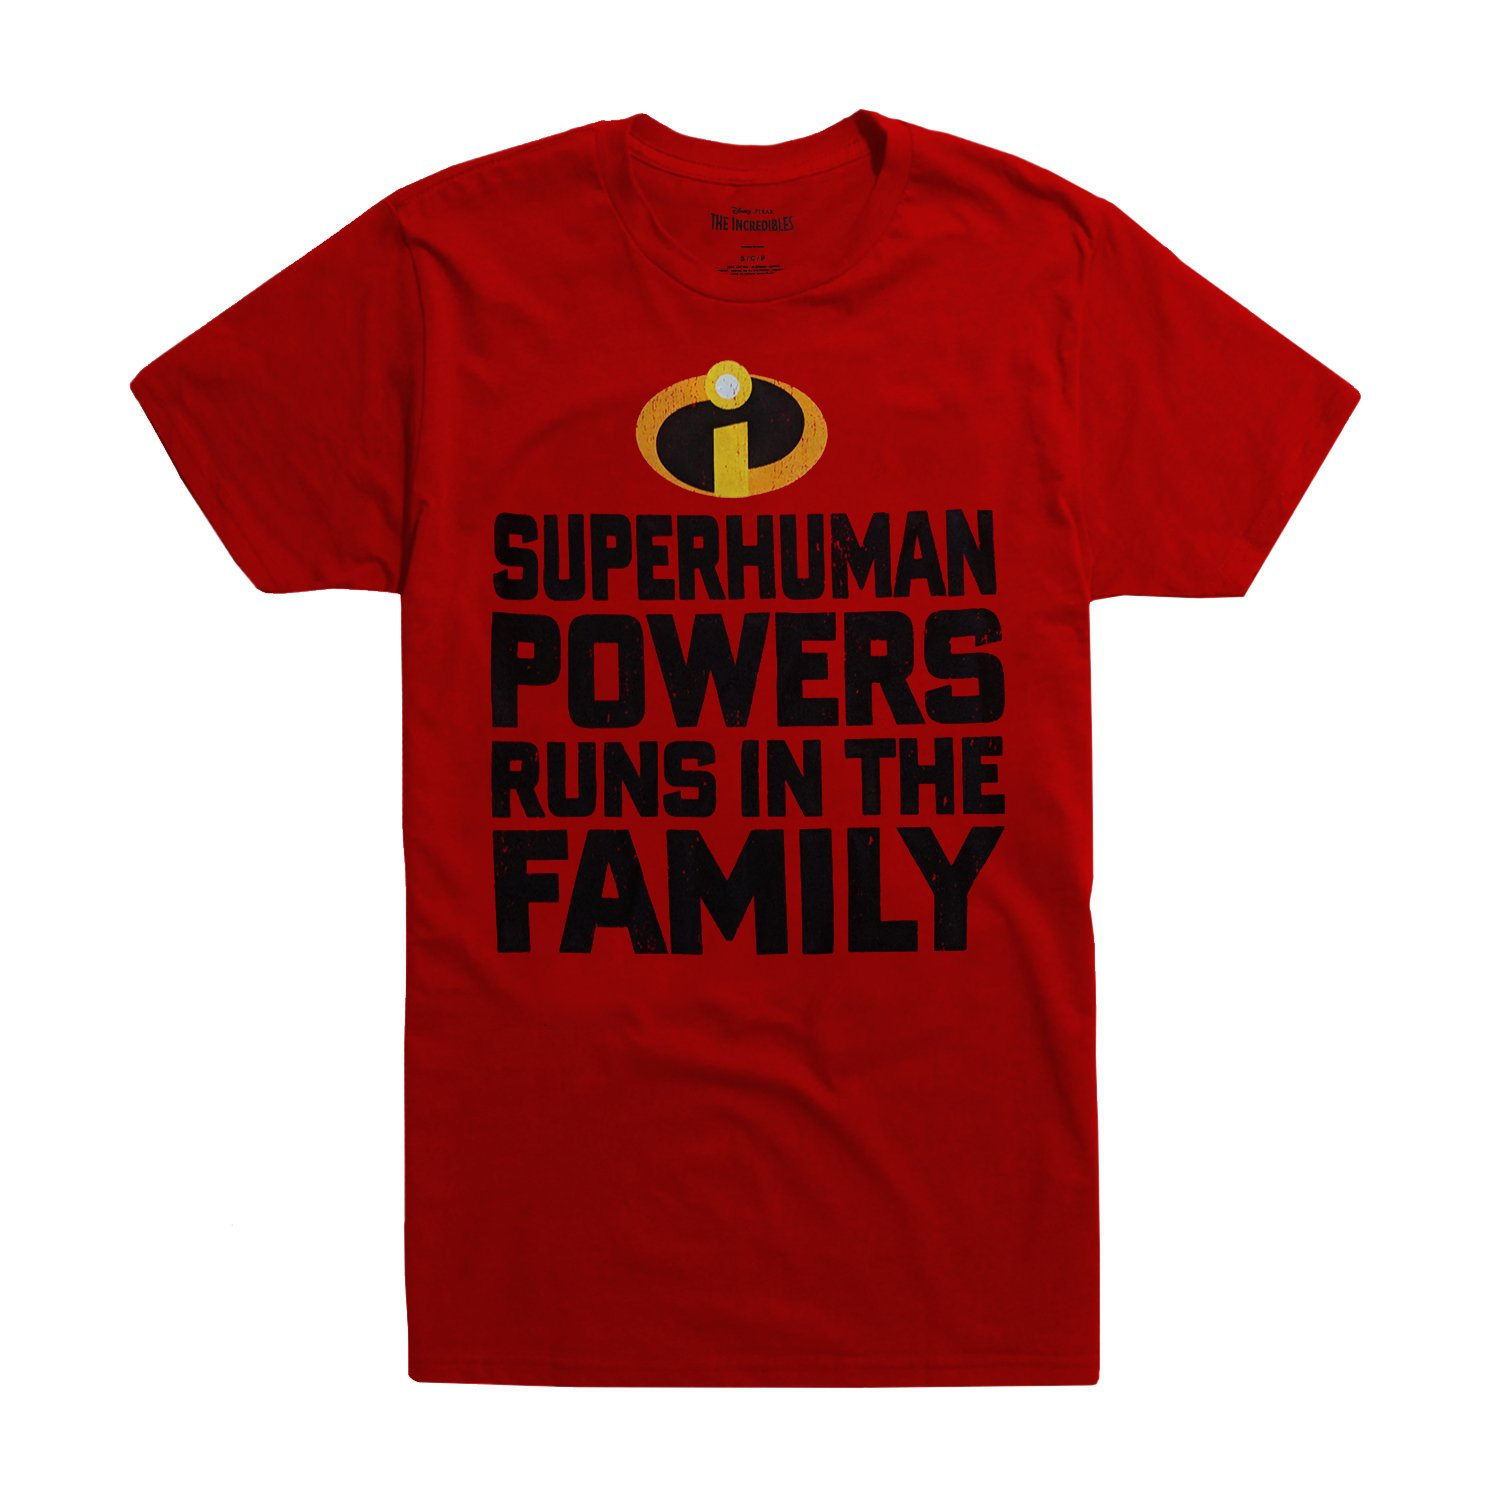 91591b8ad Amazon.com: Mad Engine Incredibles Superhuman Powers Runs in The Family T- Shirt: Clothing